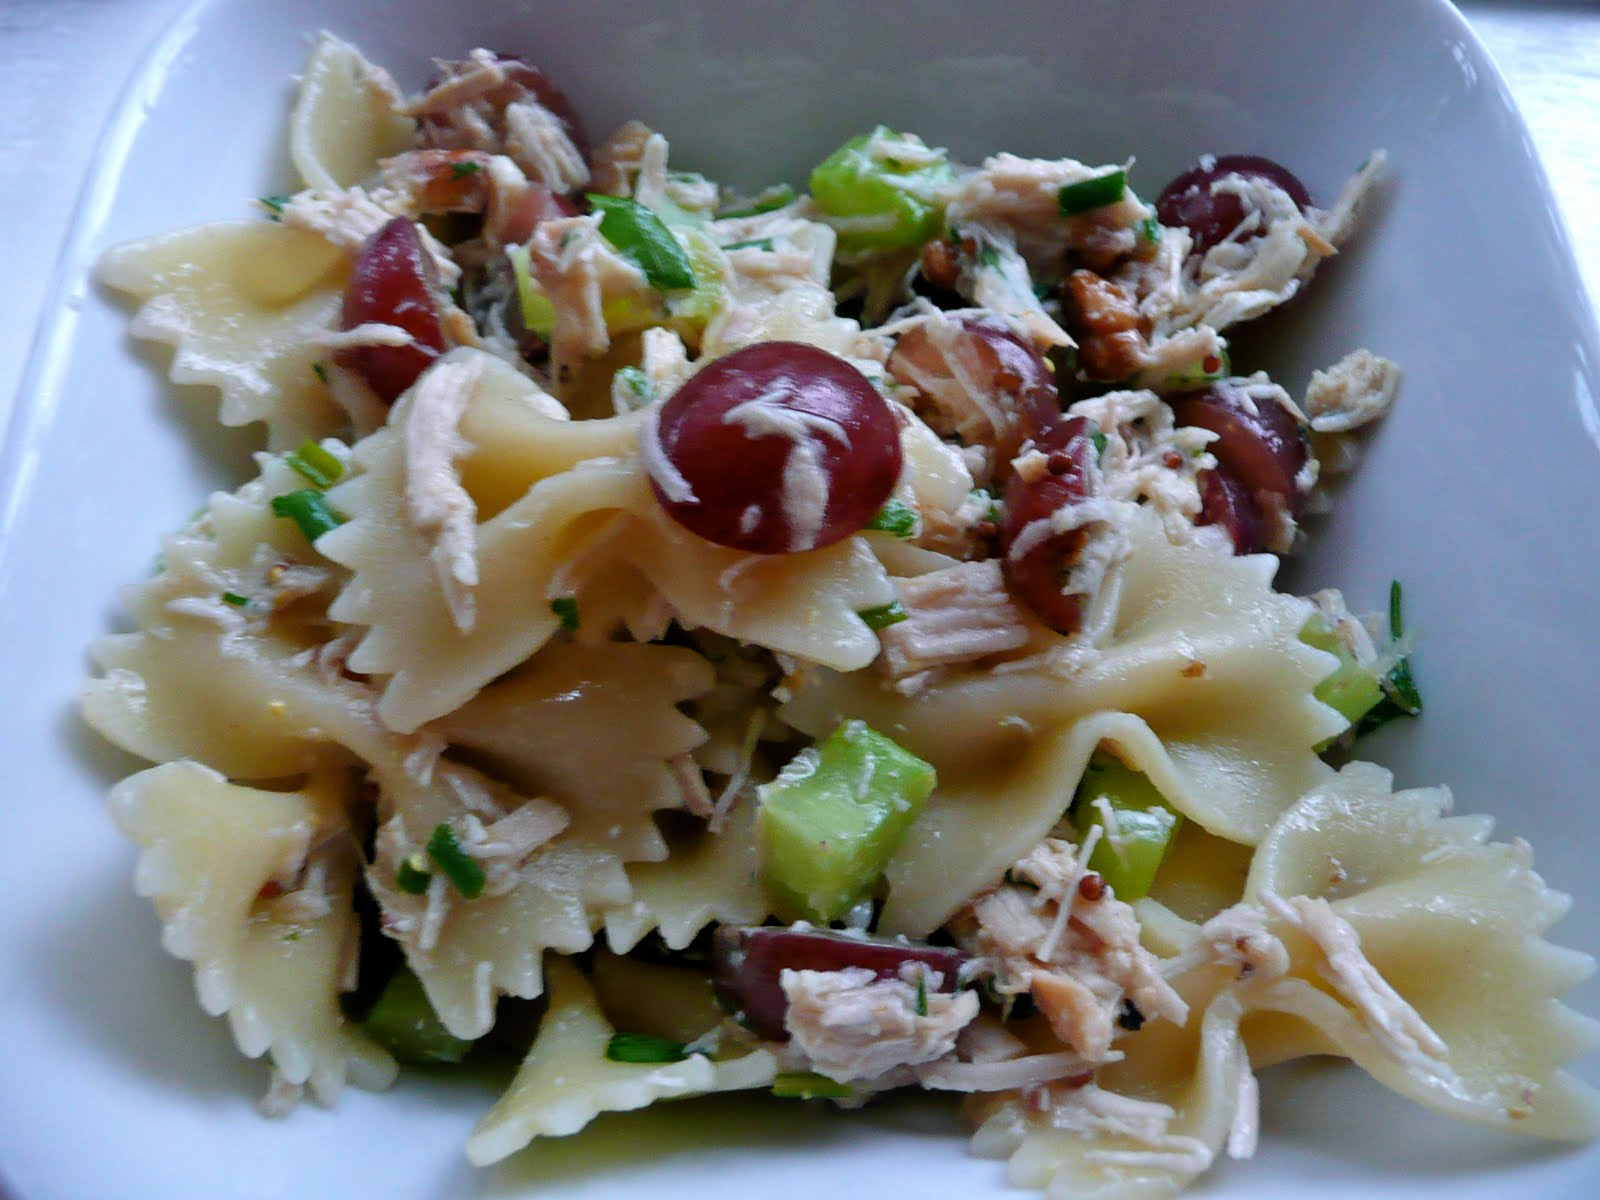 Cook the Recipes: Roasted Chicken and Bow Tie Pasta Salad